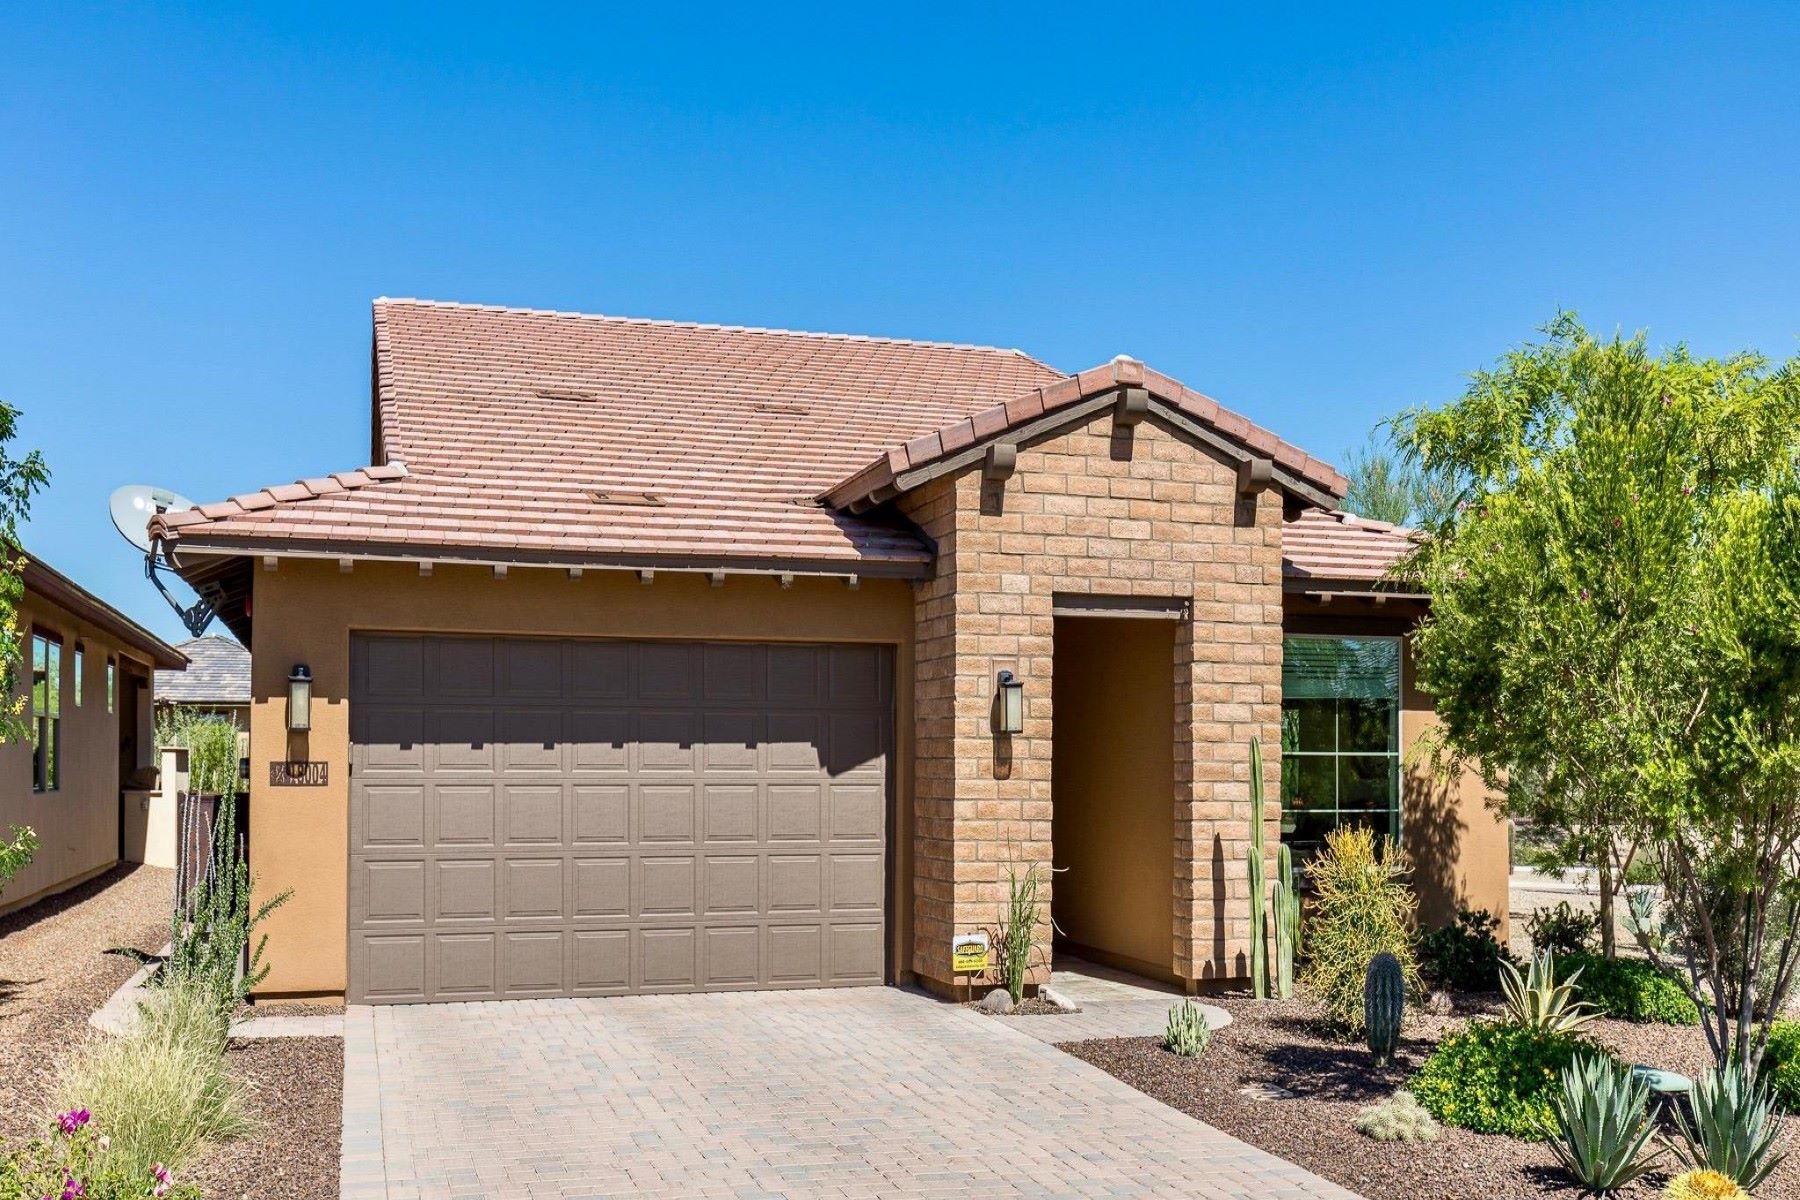 Single Family Homes for Sale at Trilogy at Verde River 18004 E SILVER SAGE LN Rio Verde, Arizona 85263 United States